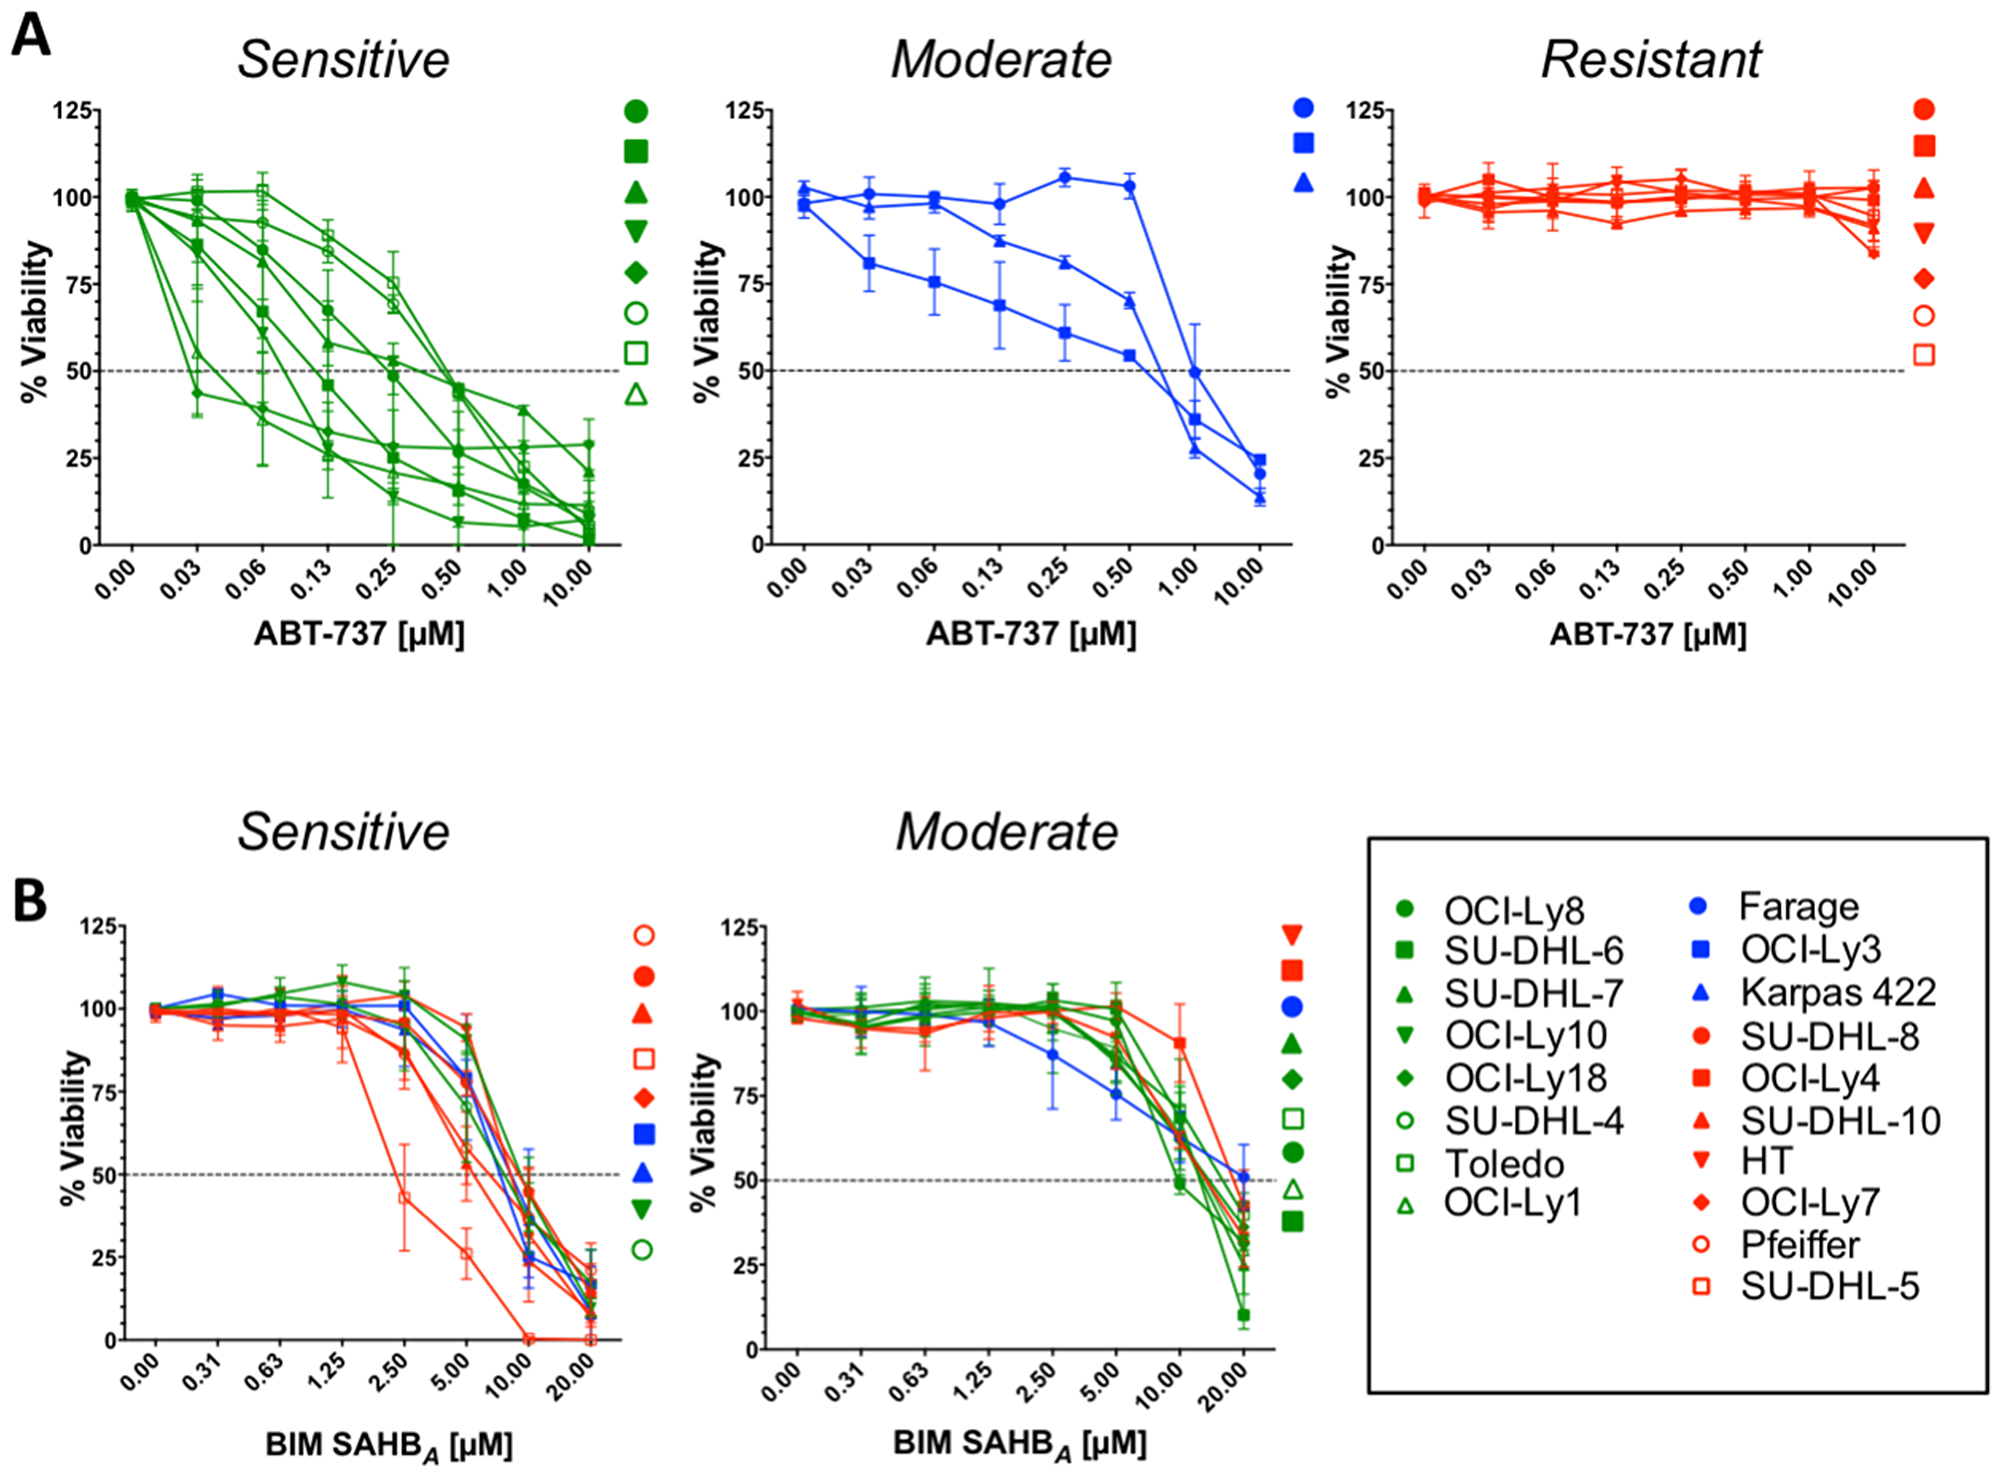 Sensitivity of DLBCLs to BIM SAHBA inversely correlates with their sensitivity to ABT-737.